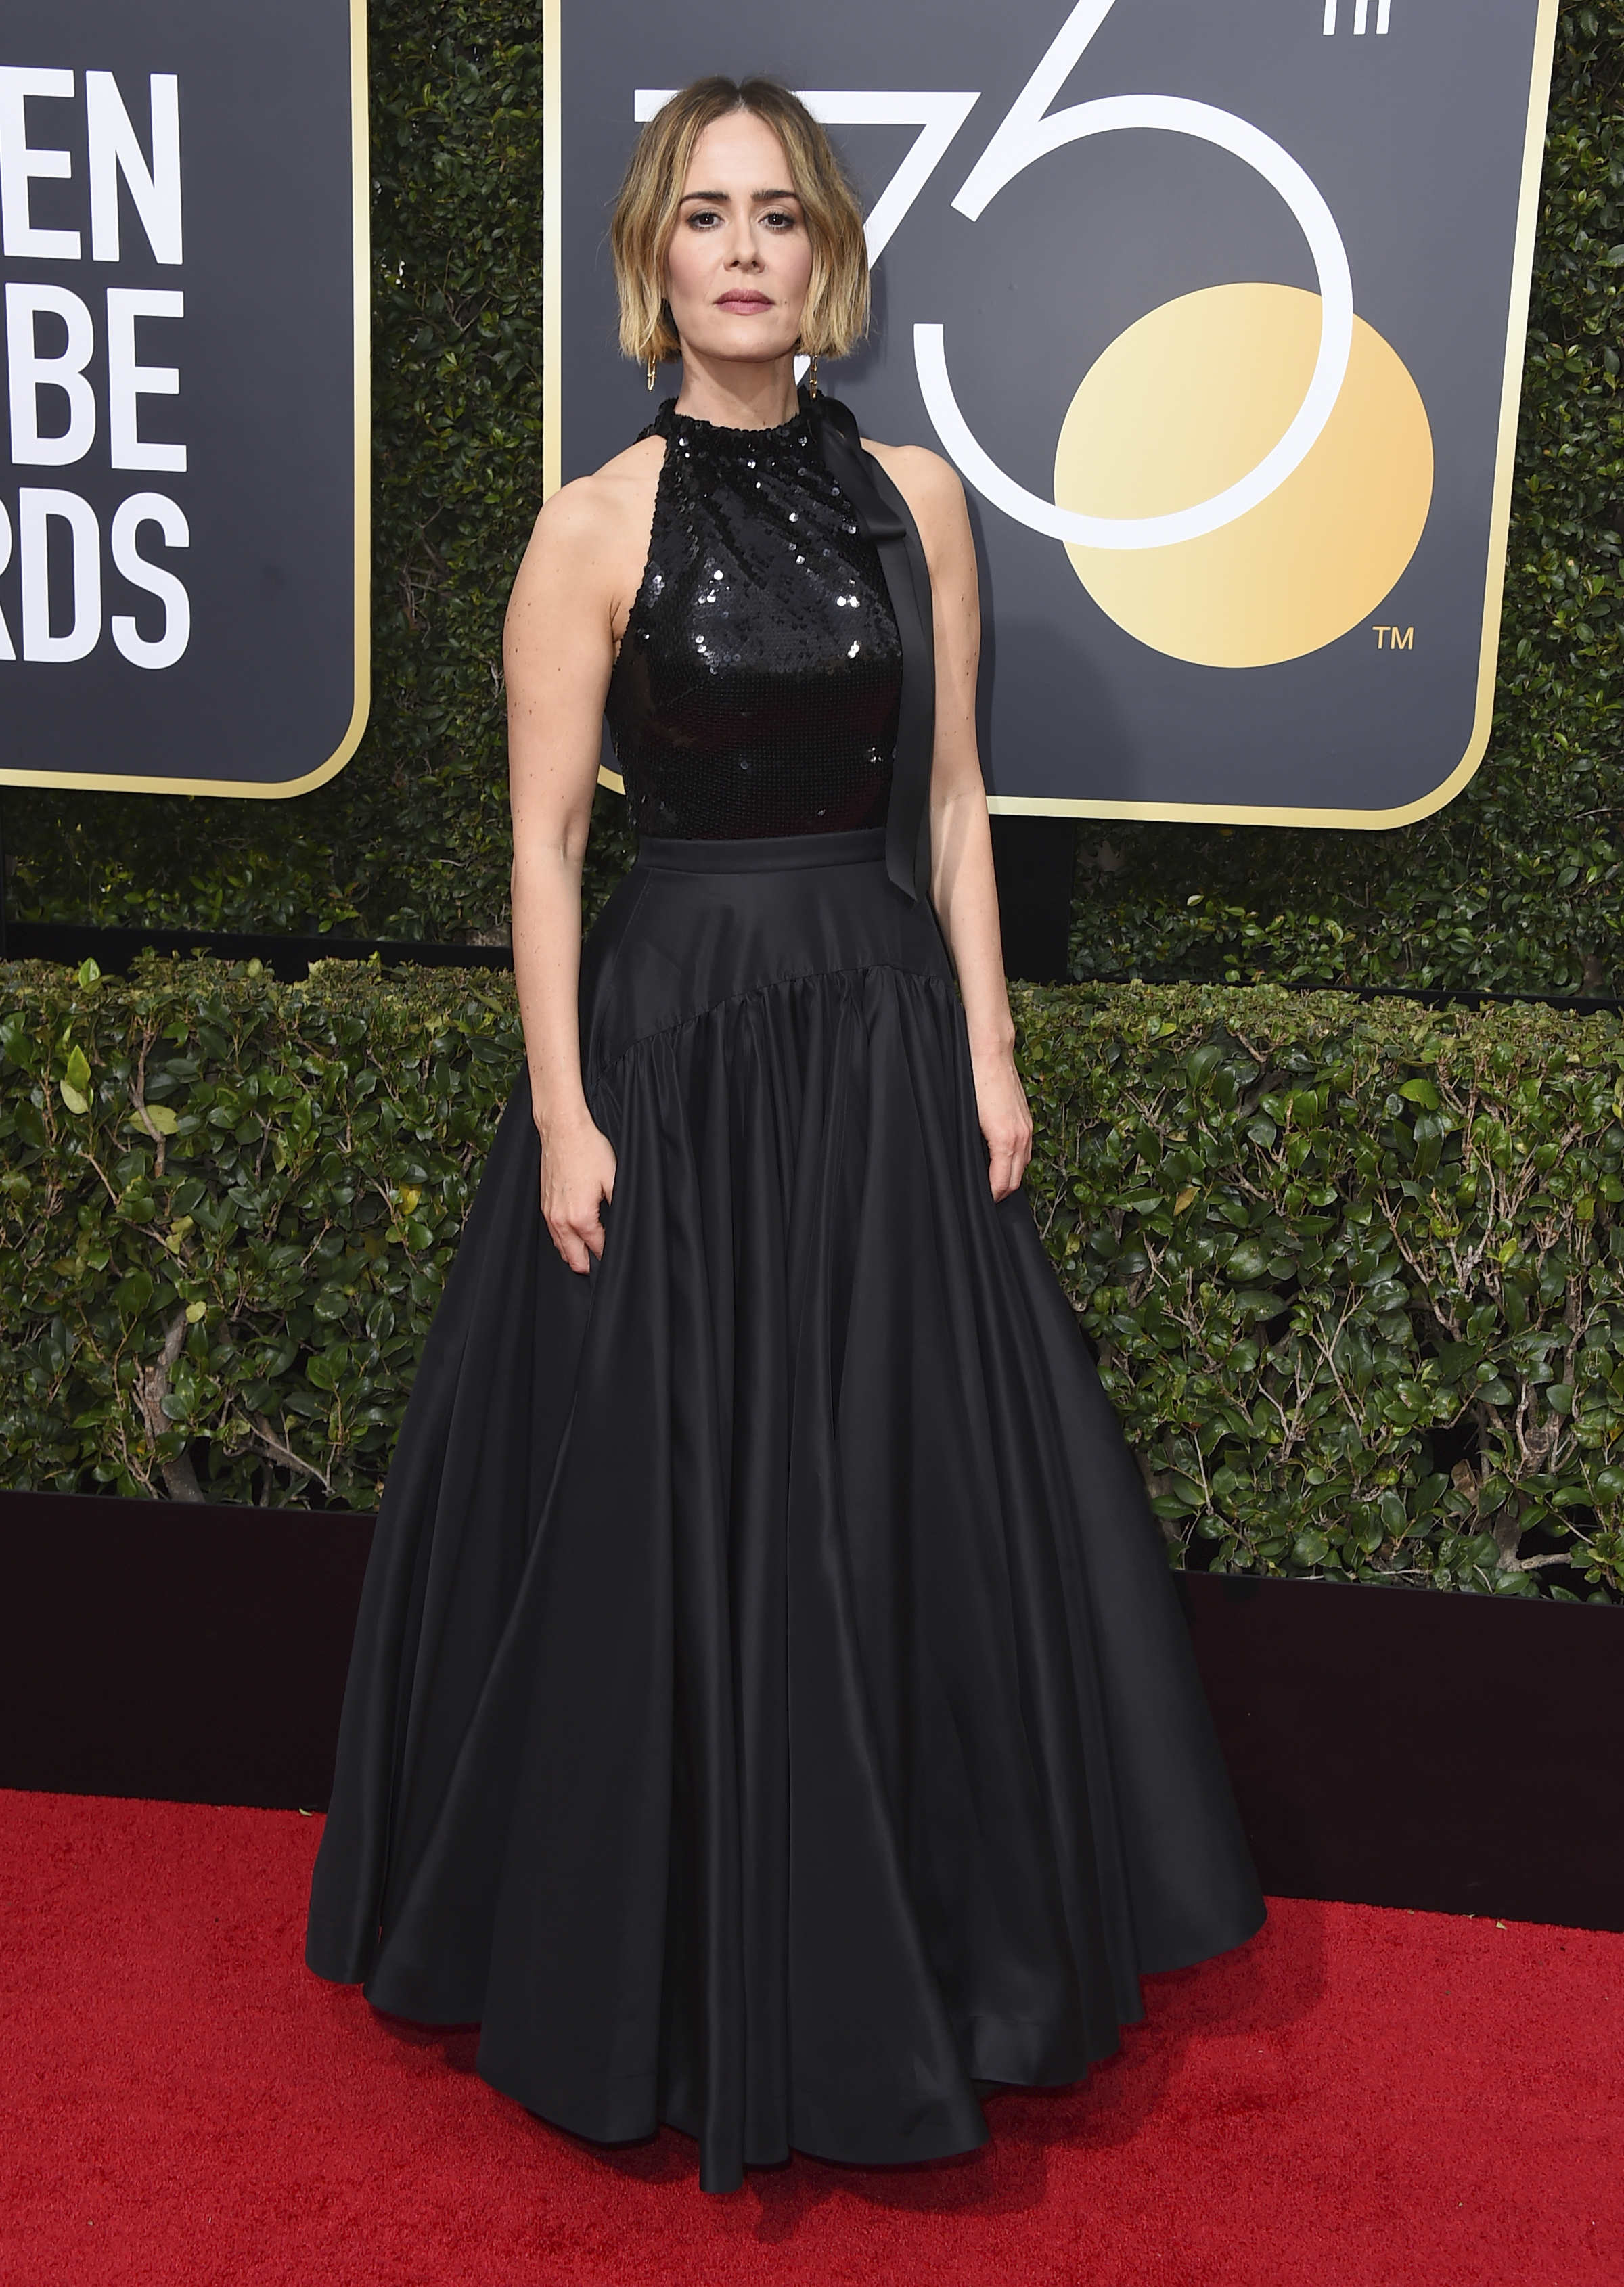 <div class='meta'><div class='origin-logo' data-origin='AP'></div><span class='caption-text' data-credit='Jordan Strauss/Invision/AP'>Sarah Paulson arrives at the 75th annual Golden Globe Awards at the Beverly Hilton Hotel on Sunday, Jan. 7, 2018, in Beverly Hills, Calif.</span></div>